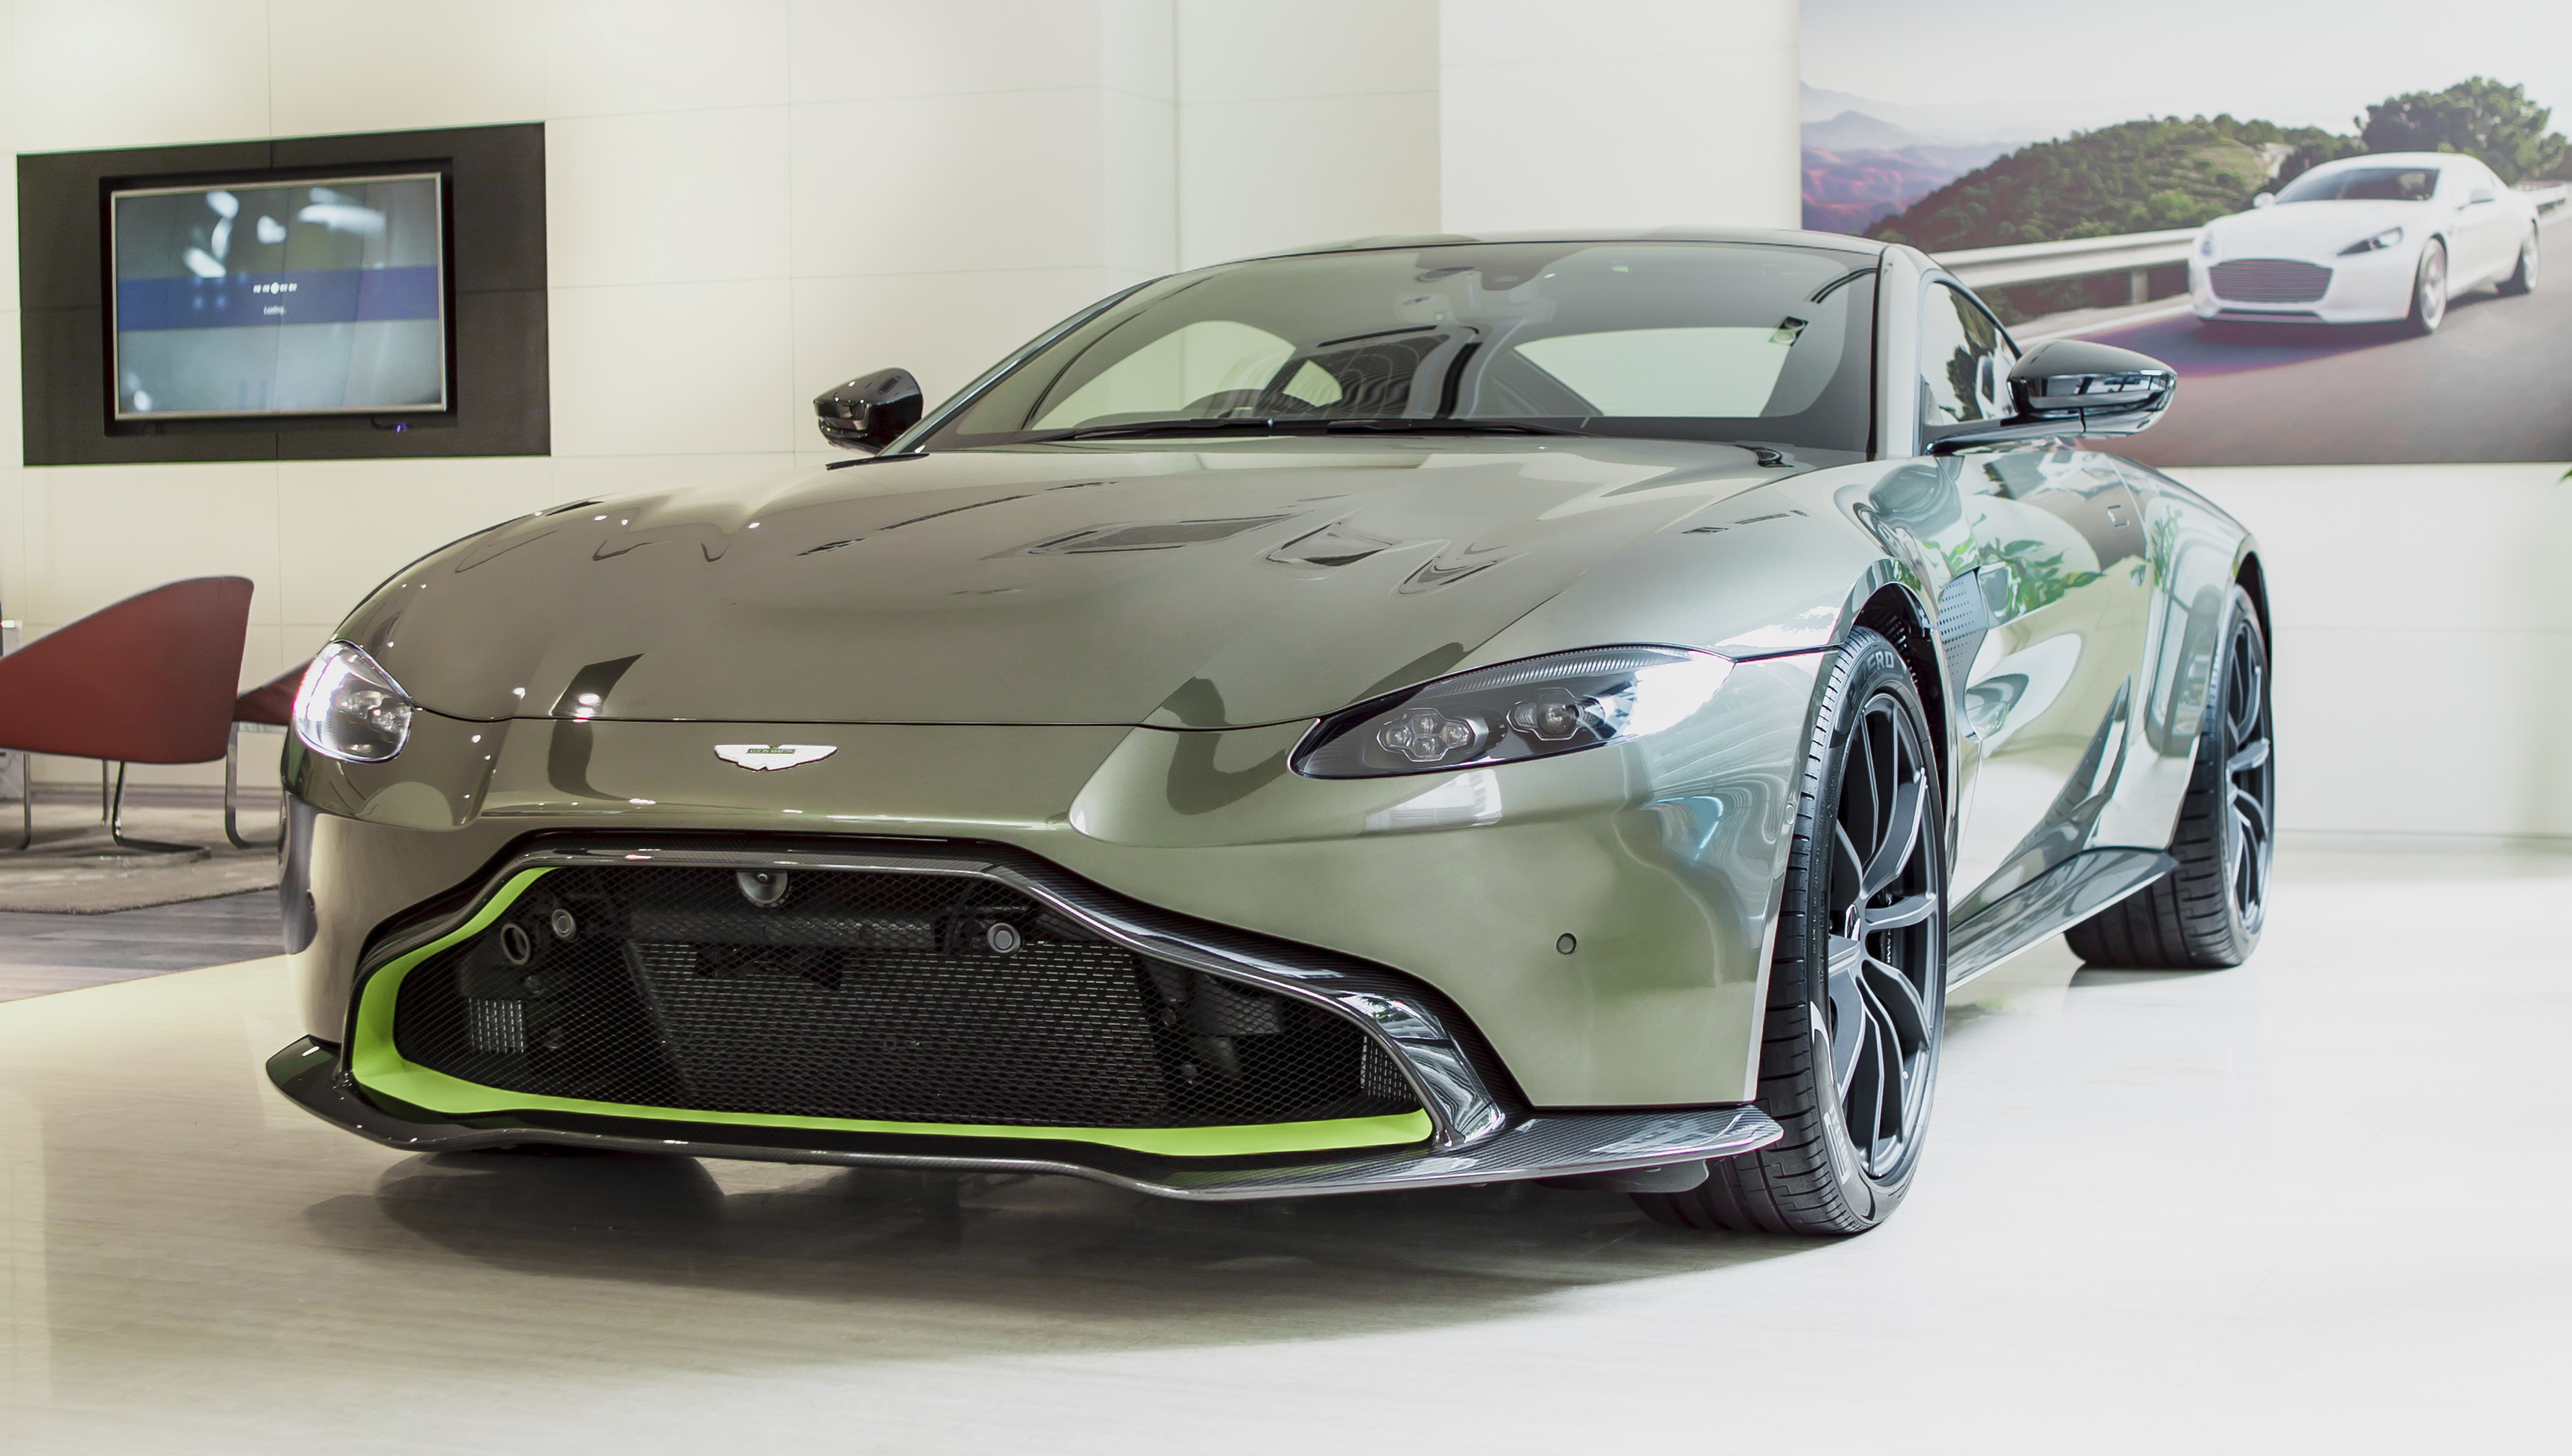 Aston Martin Vantage Amr Malaysia Edition Debuts Specially Kitted Vantage V8 Inspired By Its Amr Sibling Paultan Org